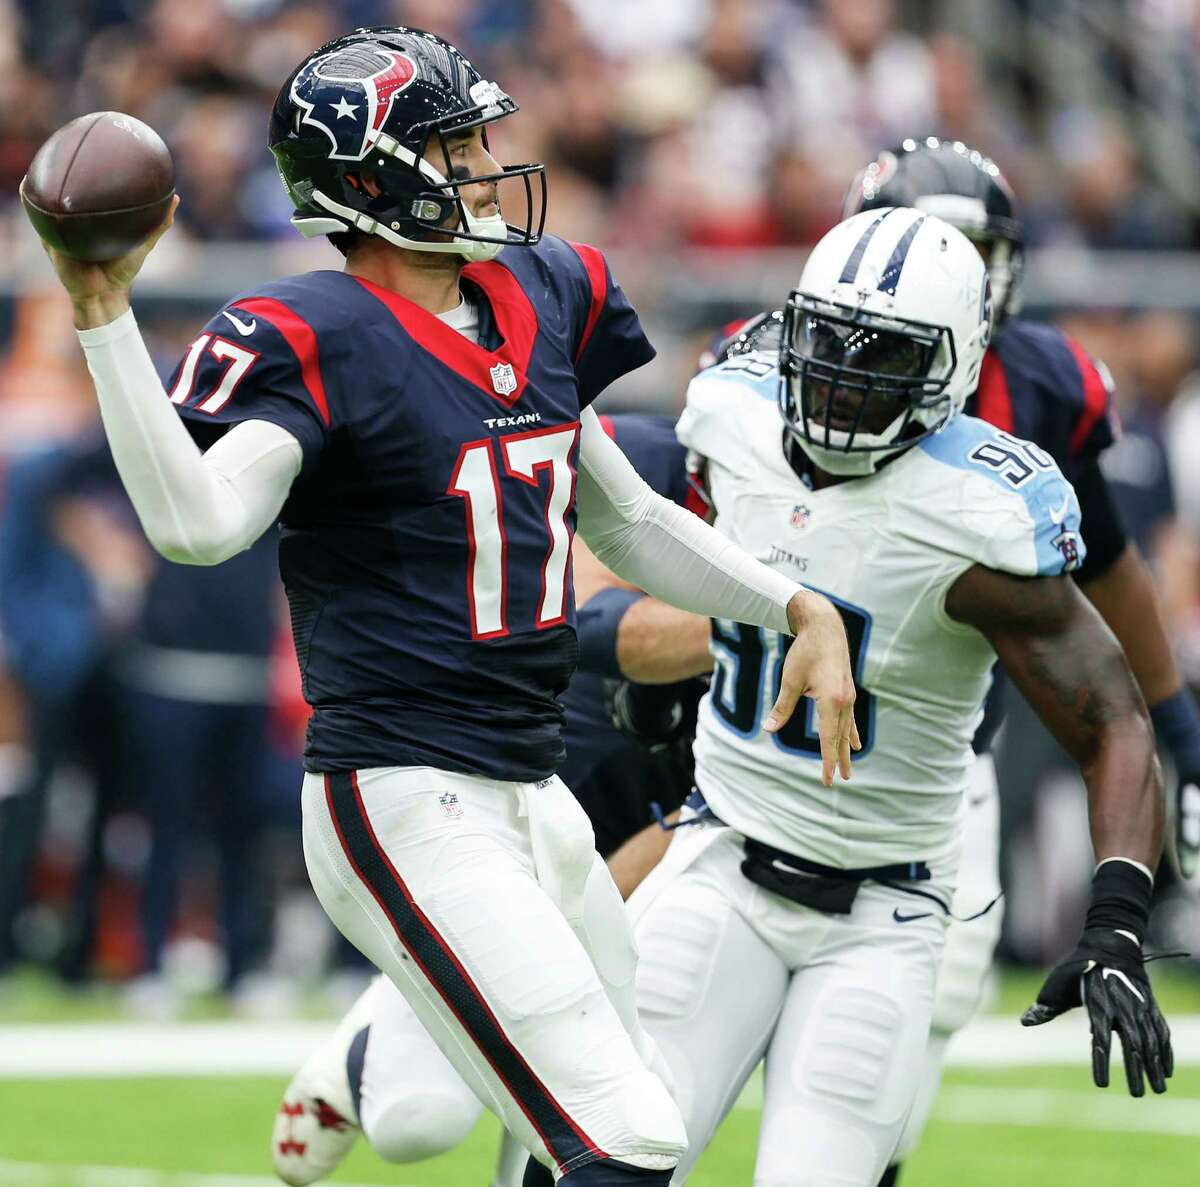 Houston Texans quarterback Brock Osweiler (17) is throws a pass as Tennessee Titans outside linebacker Brian Orakpo (98) puts on defensive pressure during the second quarter of an NFL football game at NRG Stadium on Sunday, Oct. 2, 2016, in Houston. ( Brett Coomer / Houston Chronicle )